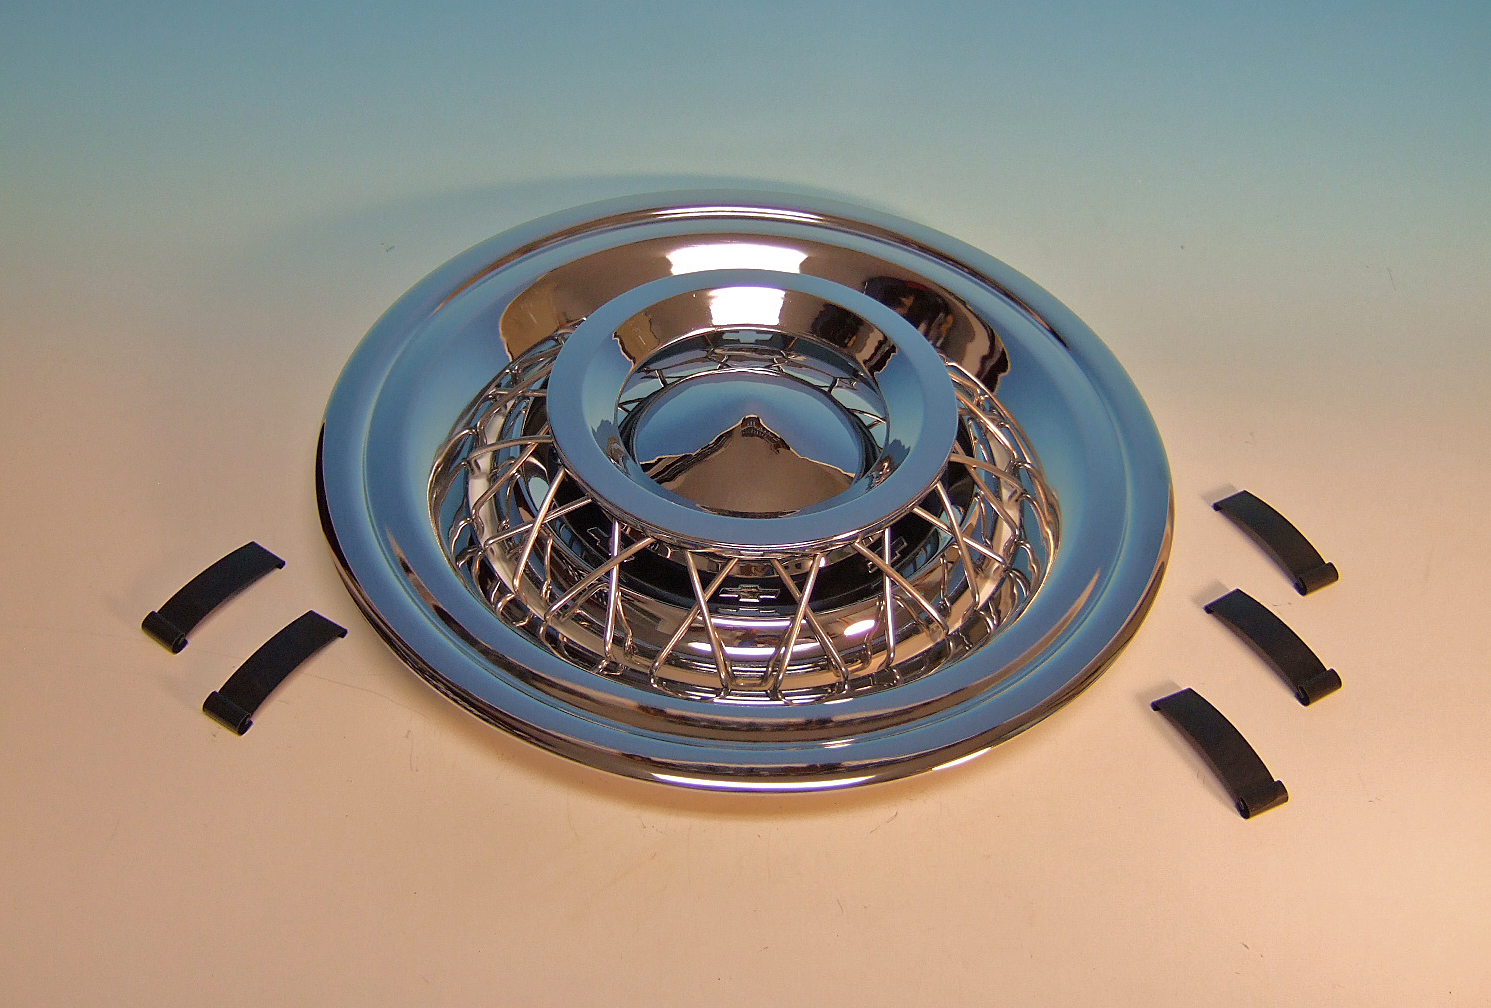 56 Chevy Wire Wheel Cover 1956 Accessory GM Chevrolet